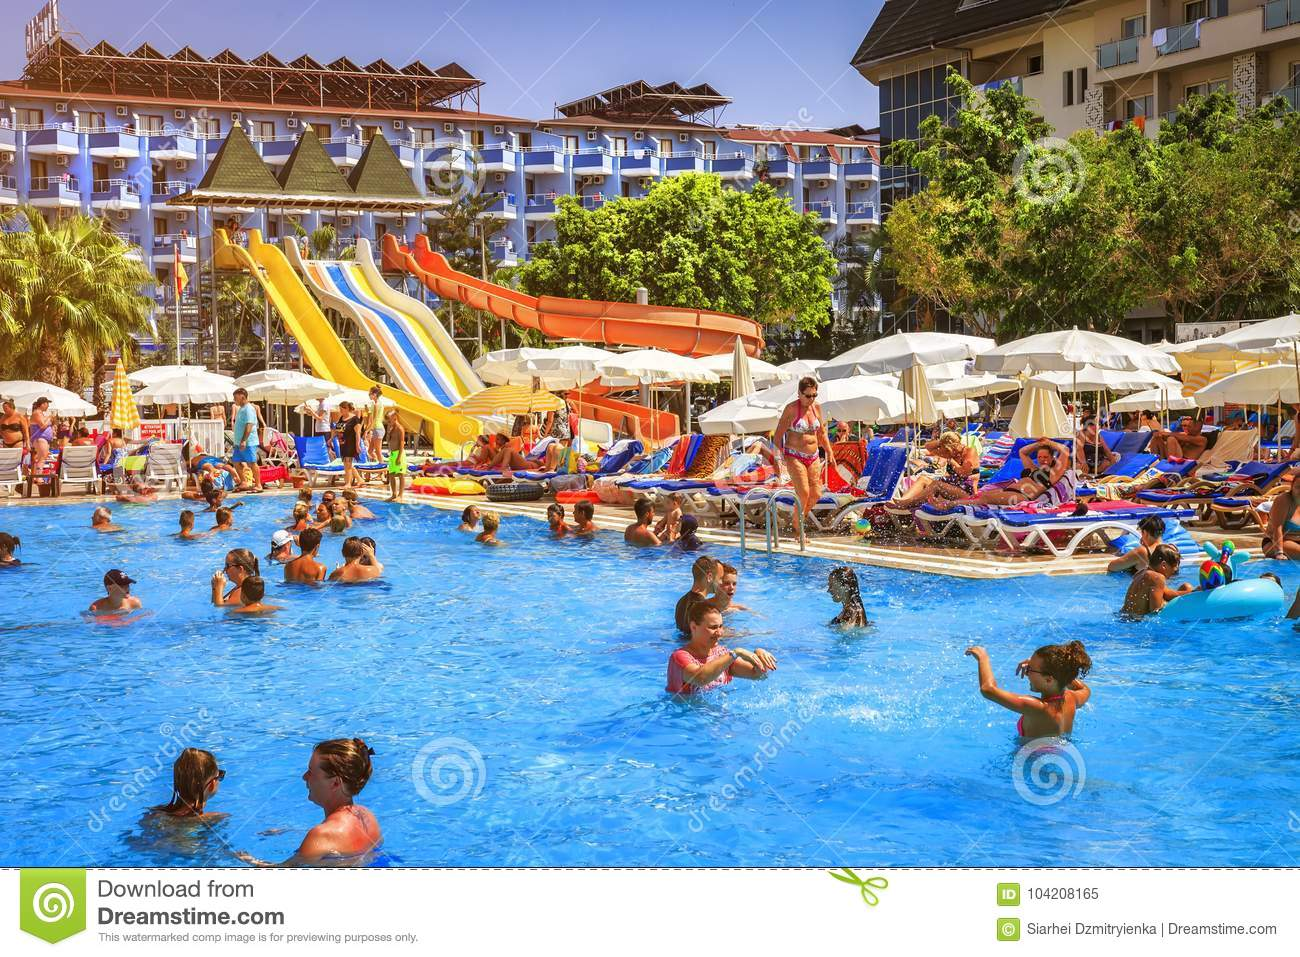 Konakli Turkey August 18 2017 Swimming Pool With Water Park In Resort Tropical Hotel Happy